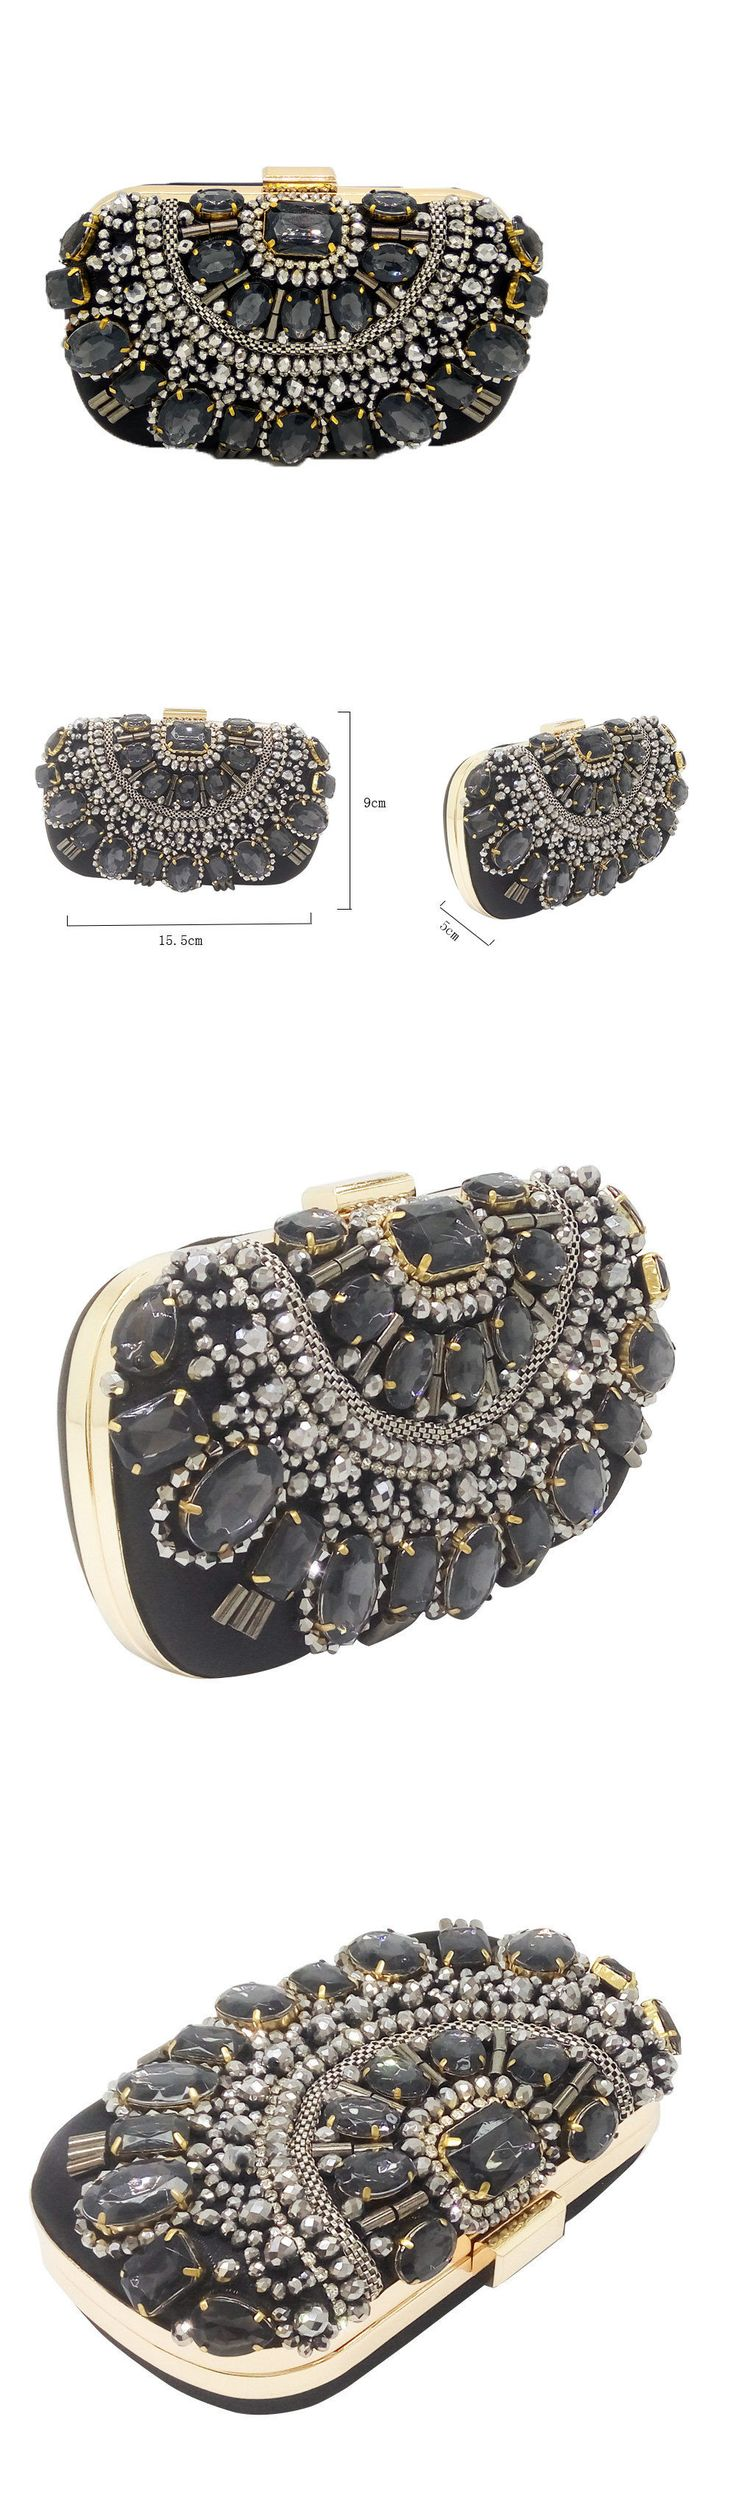 Bridal Handbags And Bags: Black Beaded Women Clutches Handbags And Purse Bridal Wedding Evening Clutch Bag -> BUY IT NOW ONLY: $19.99 on eBay!